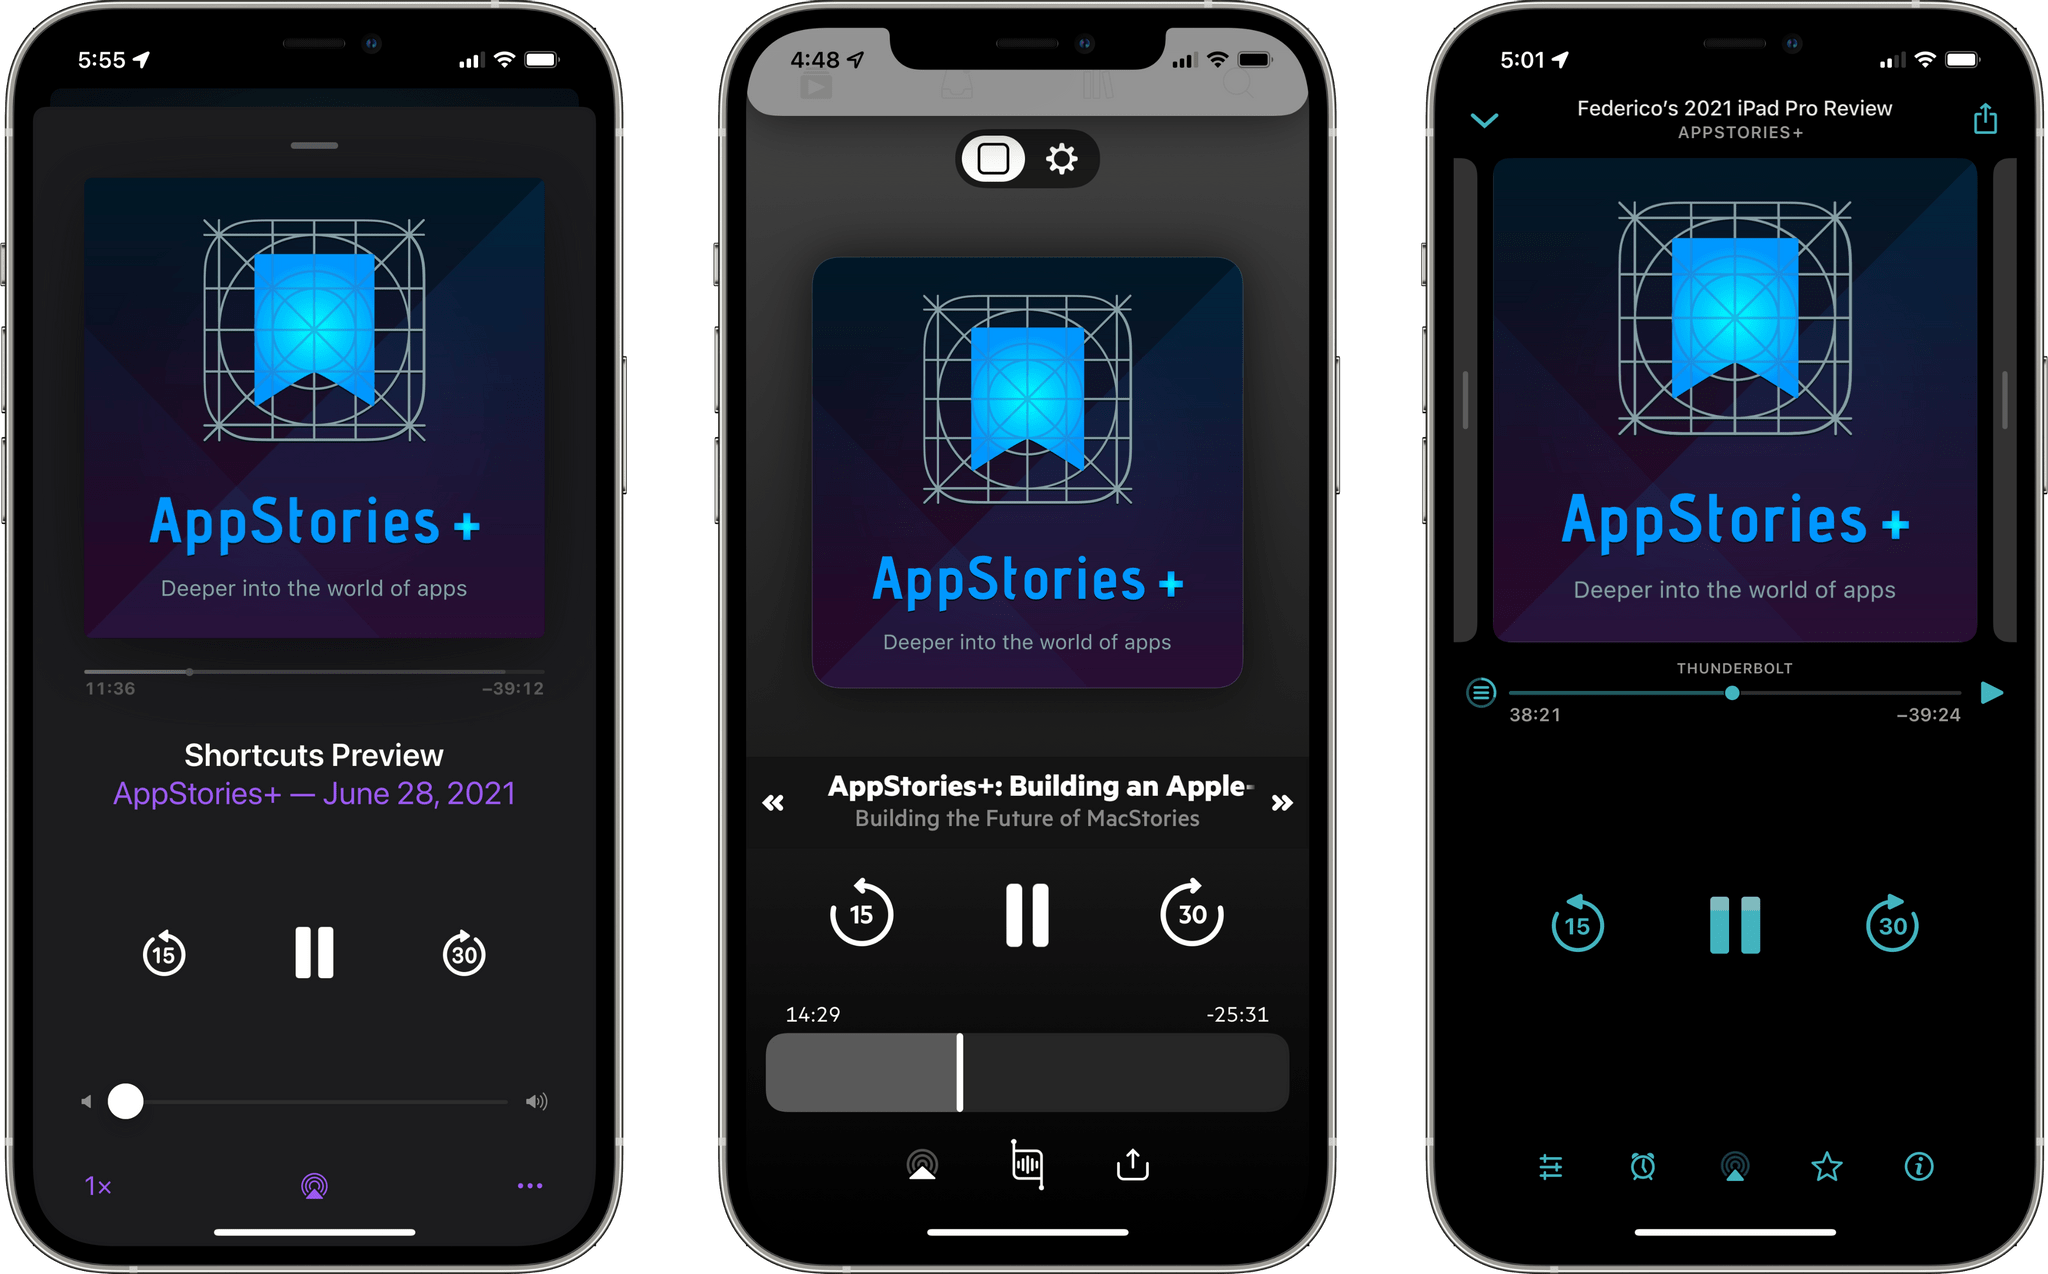 You can listen to AppStories+ in any podcast client.